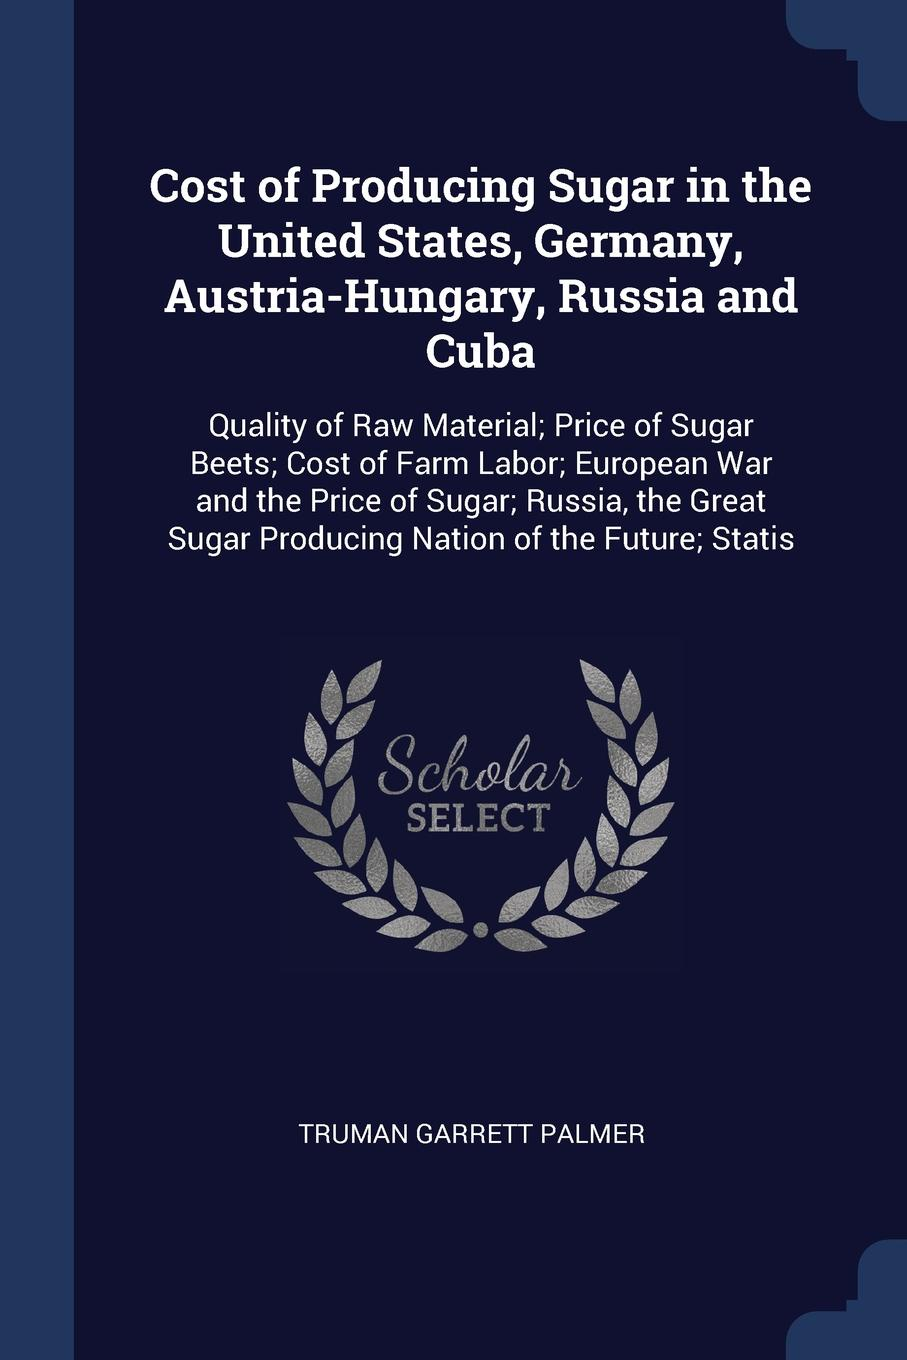 Cost of Producing Sugar in the United States, Germany, Austria-Hungary, Russia and Cuba. Quality of Raw Material; Price of Sugar Beets; Cost of Farm Labor; European War and the Price of Sugar; Russia, the Great Sugar Producing Nation of the Future...